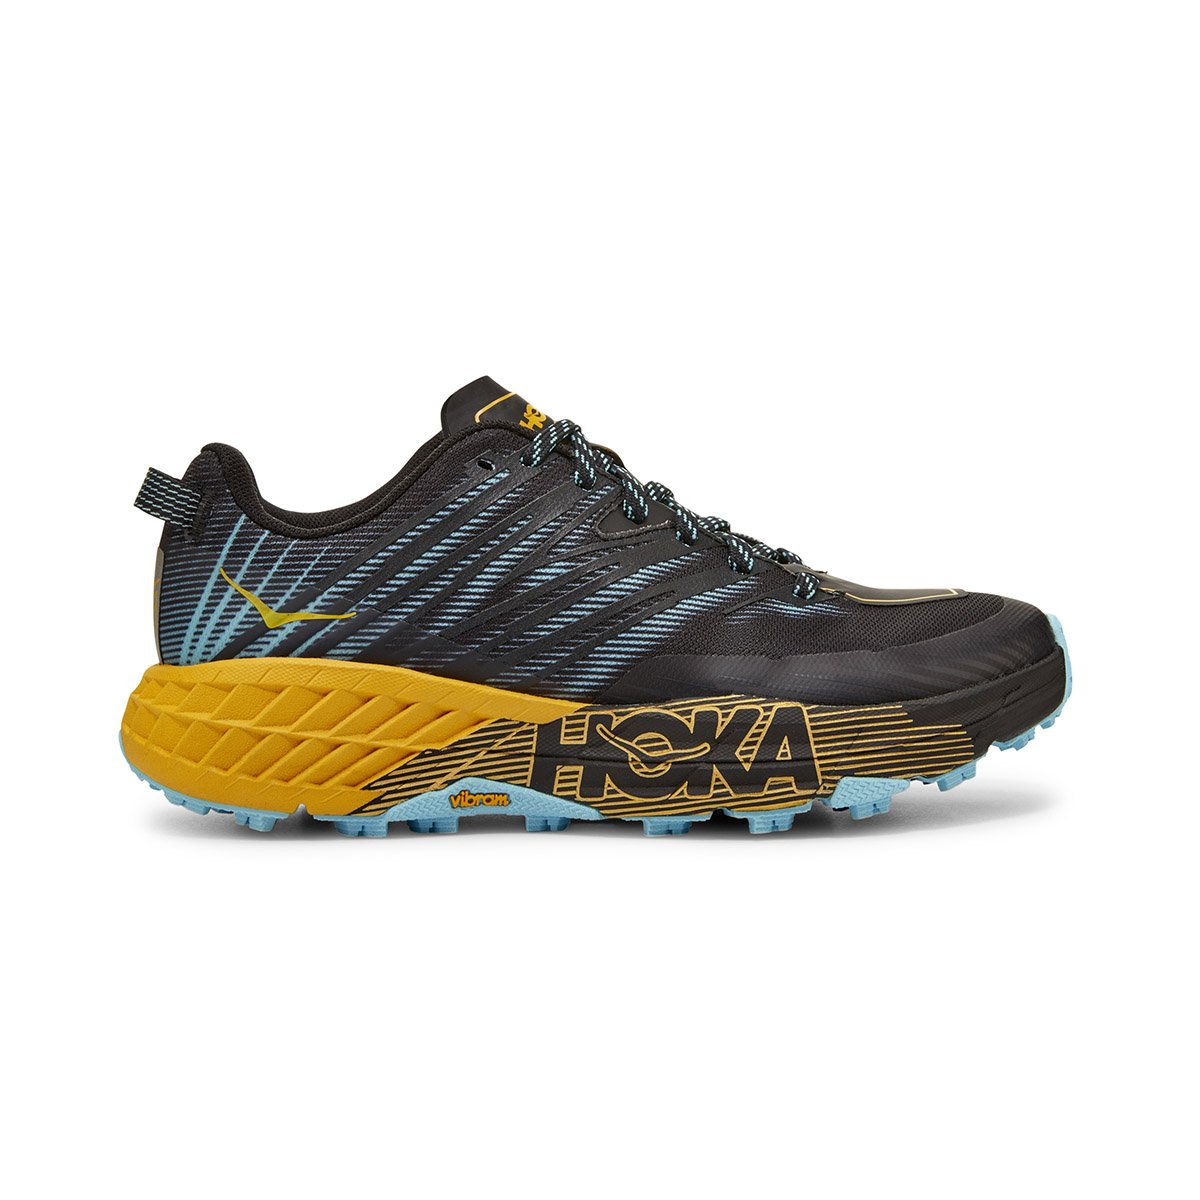 Hoka One One Speedgoat 4 dame